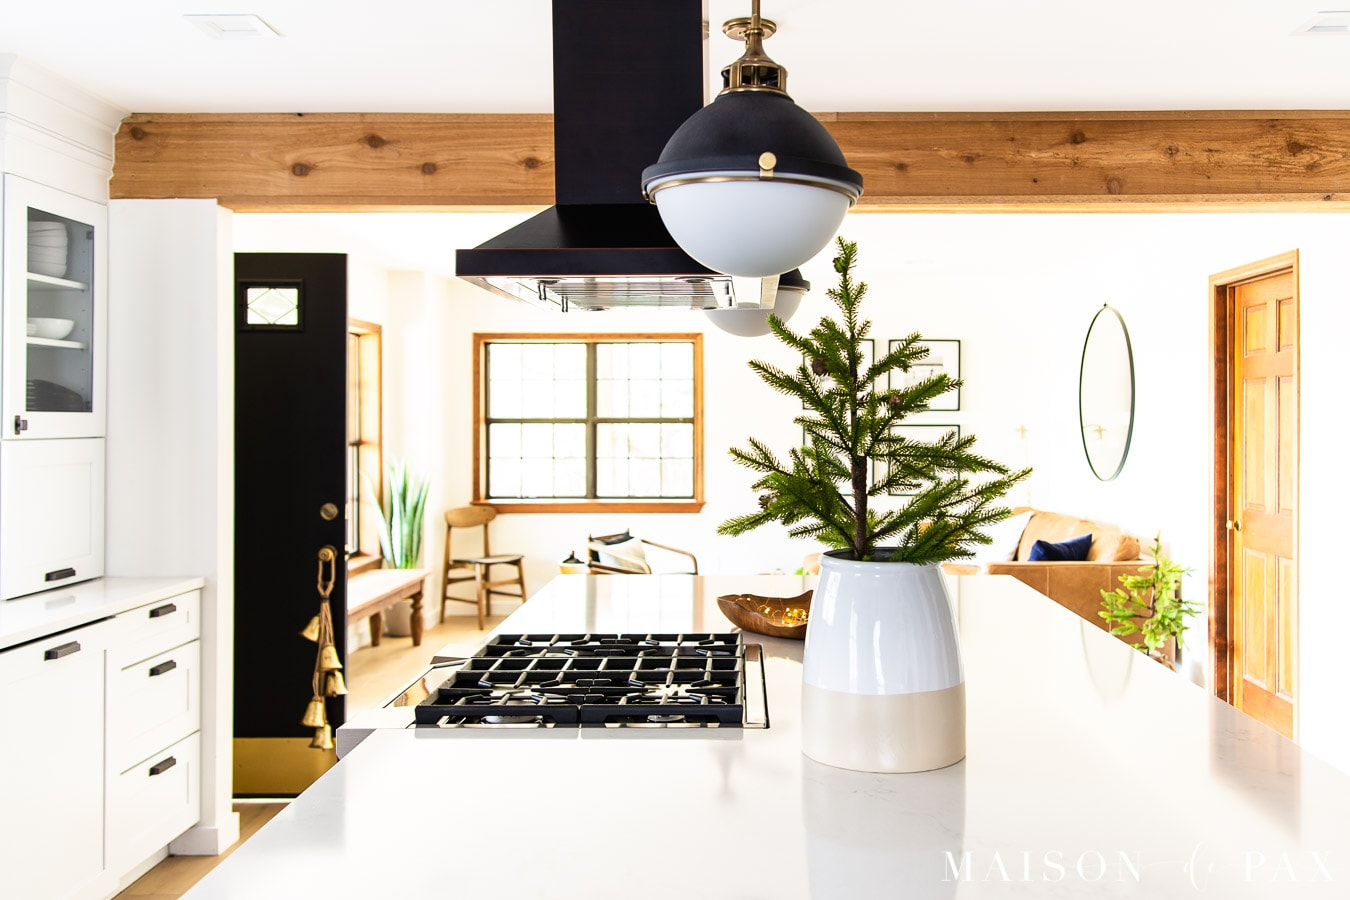 gold bells hanging on door knob and mini tree in crock on kitchen island | Maison de Pax